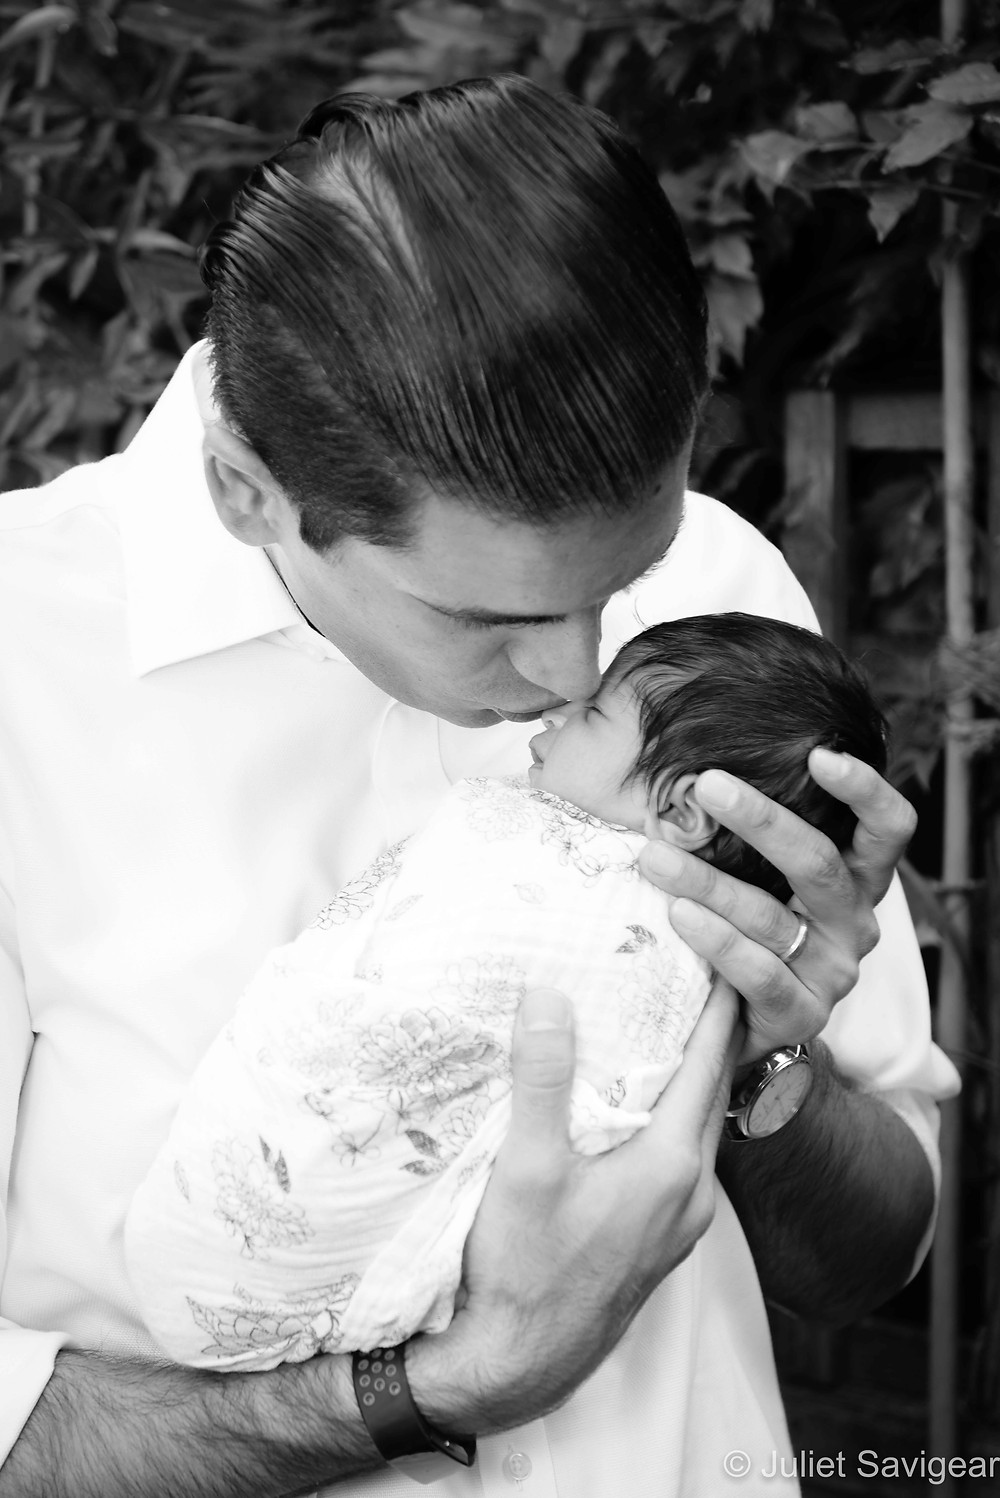 Daddy with baby girl in the garden